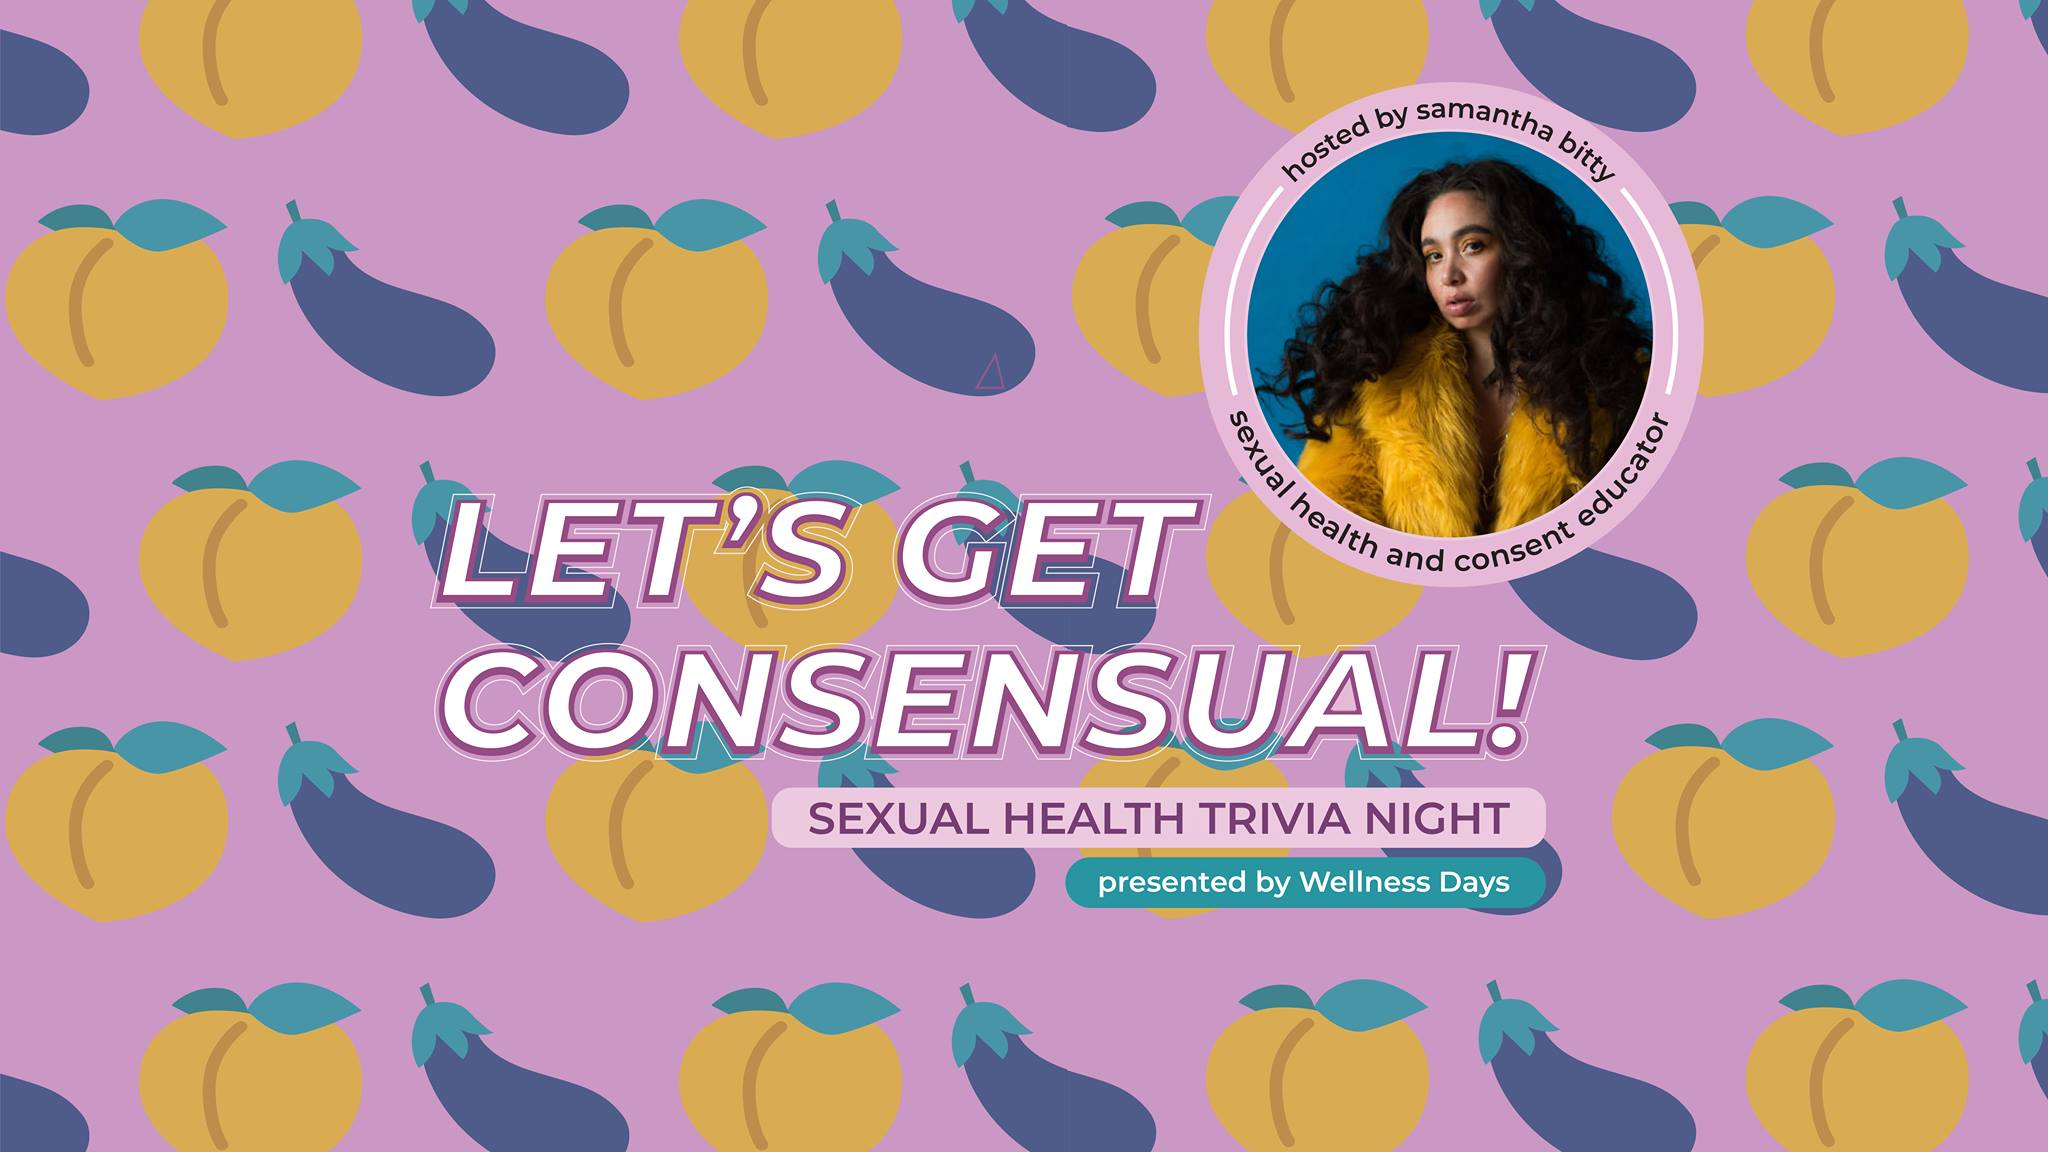 Let's Get Consensual Sexual Health Trivia